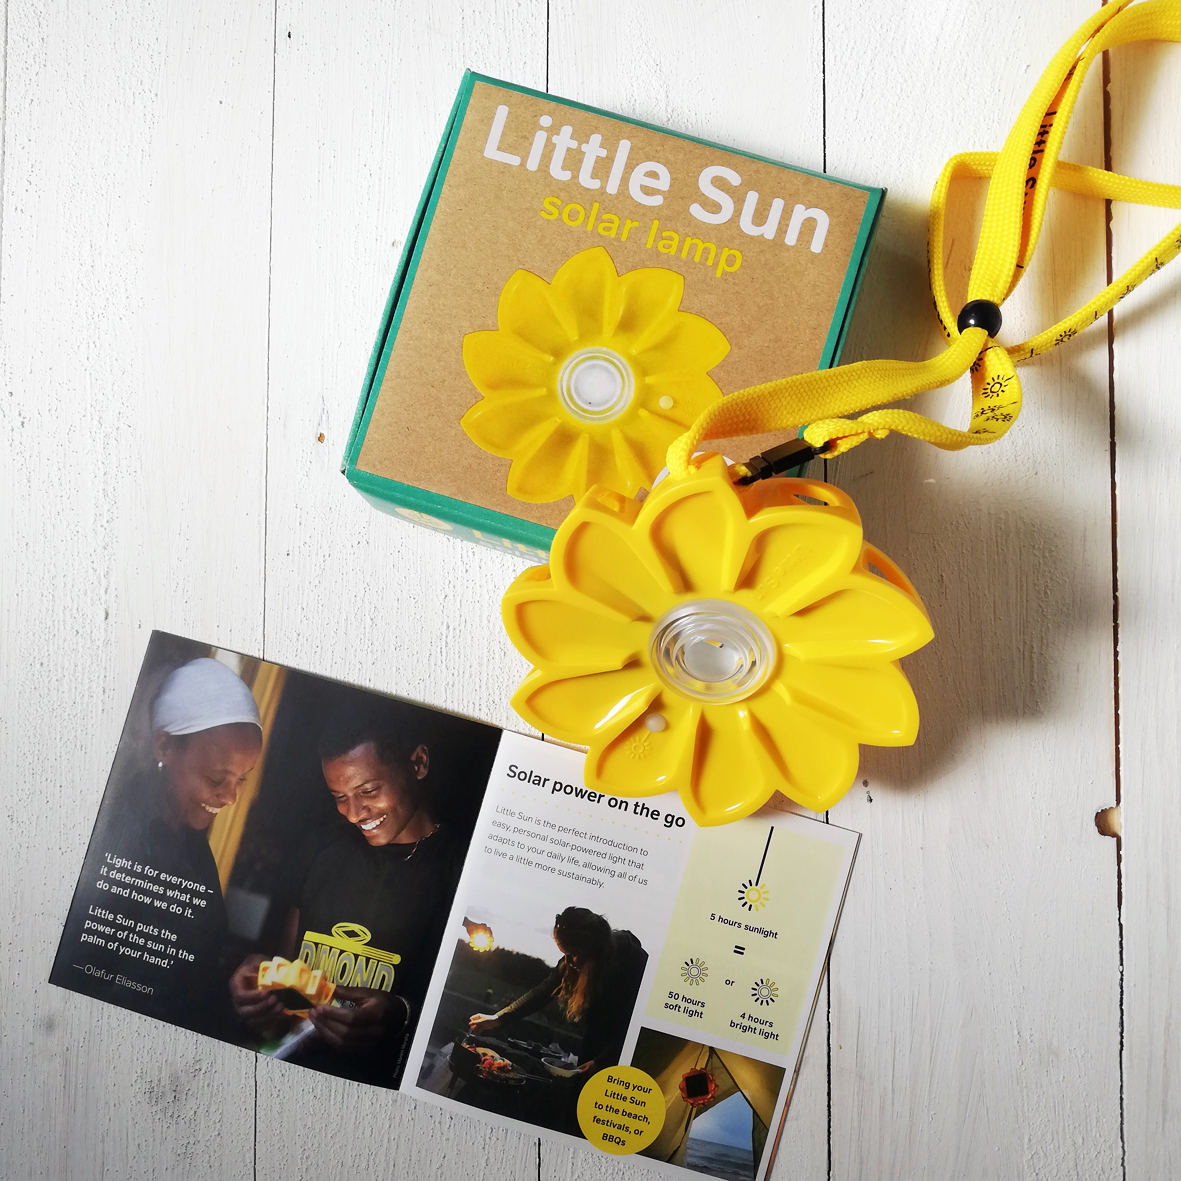 LittleSun original